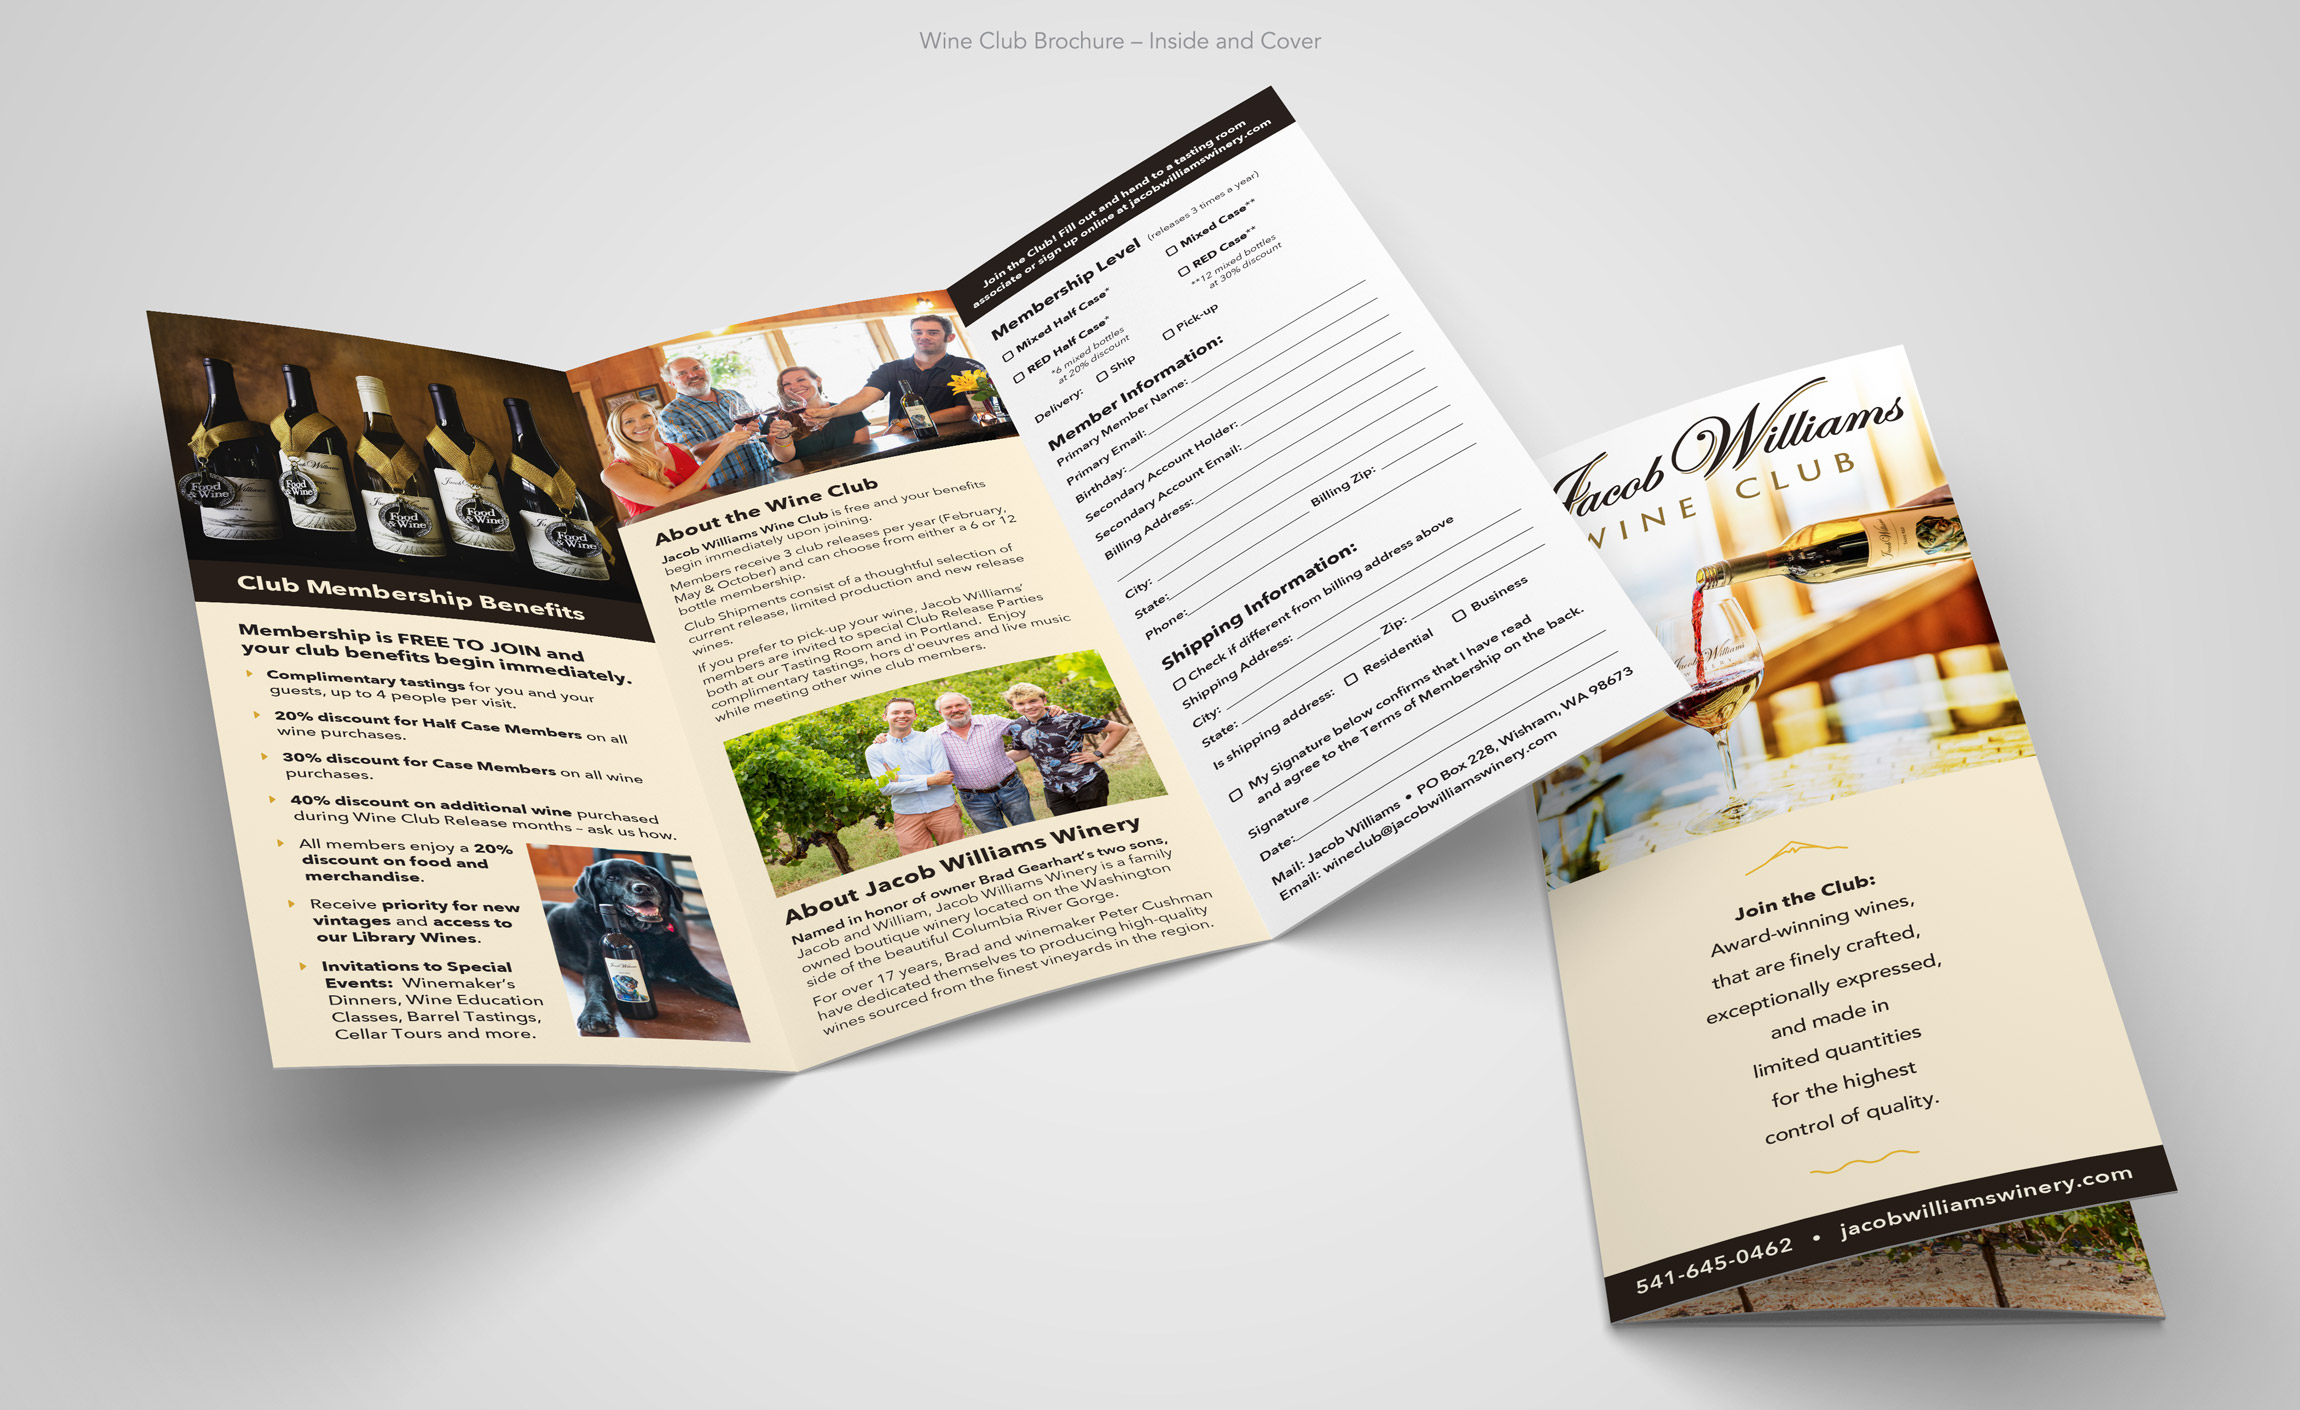 Already an established, well regarded winery, Jacob Williams came to me with a desire to upgrade their image for a more sophisticated clientele, without loosing the base that they had worked to create. It was agreed that we start with the logo Wordmark. Created early on, it had some serious problems as an identity. The logo Wordmark had been originally typeset as a script font that was not designed for the multiple sizes and purposes that this client required. Additionally, the original mark had some serious balance and spacing issues as well as poorly connecting letterforms that showed its flaws at a relatively small enlargement. The intent of sophistication had been lost in the original execution. Communication with the client made it clear that they had a very strong attachment to the overall intent of the original. After a good deal of research into the market and Jacob Williams competitors, including shelf appeal studies, I started sketching out directions for the word mark refresh that would provide balance, weight at all sizes without being heavy-handed, and the addition of some gold flourishes. Once a direction was agreed upon, I took on the work of redrawing the type from scratch to address the flaws in the poorly constructed original typeface.